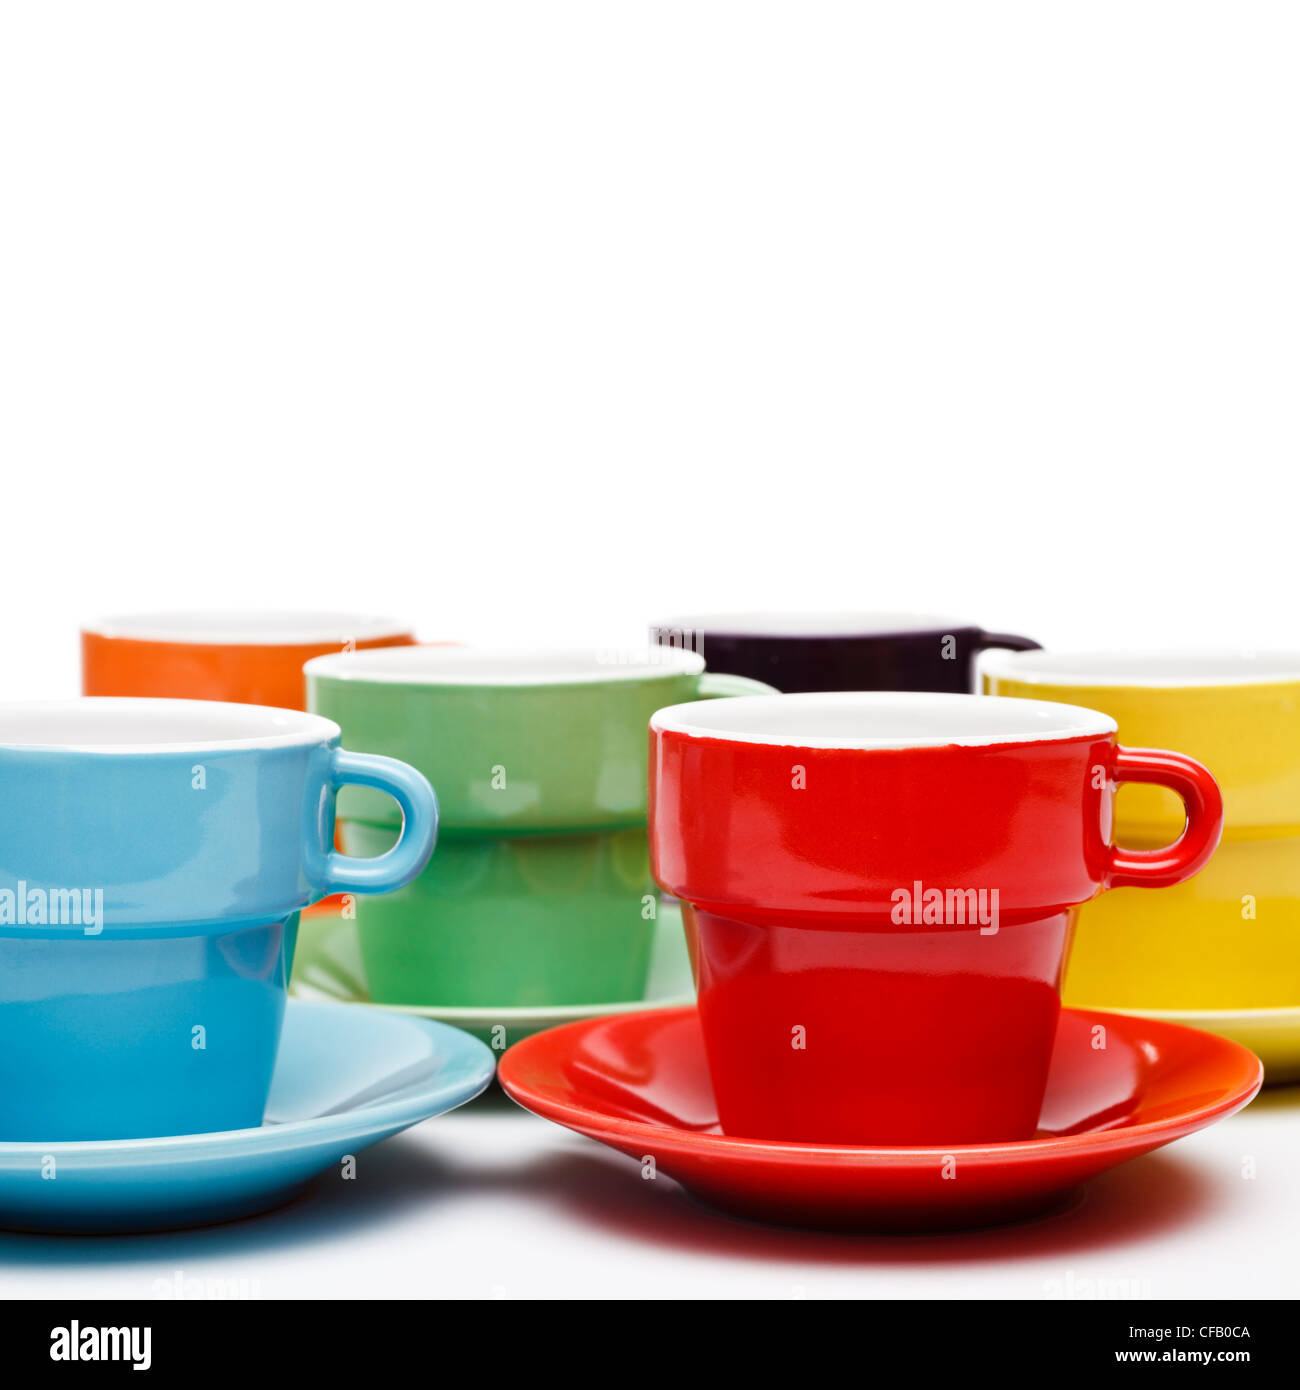 Coffee cups - Stock Image